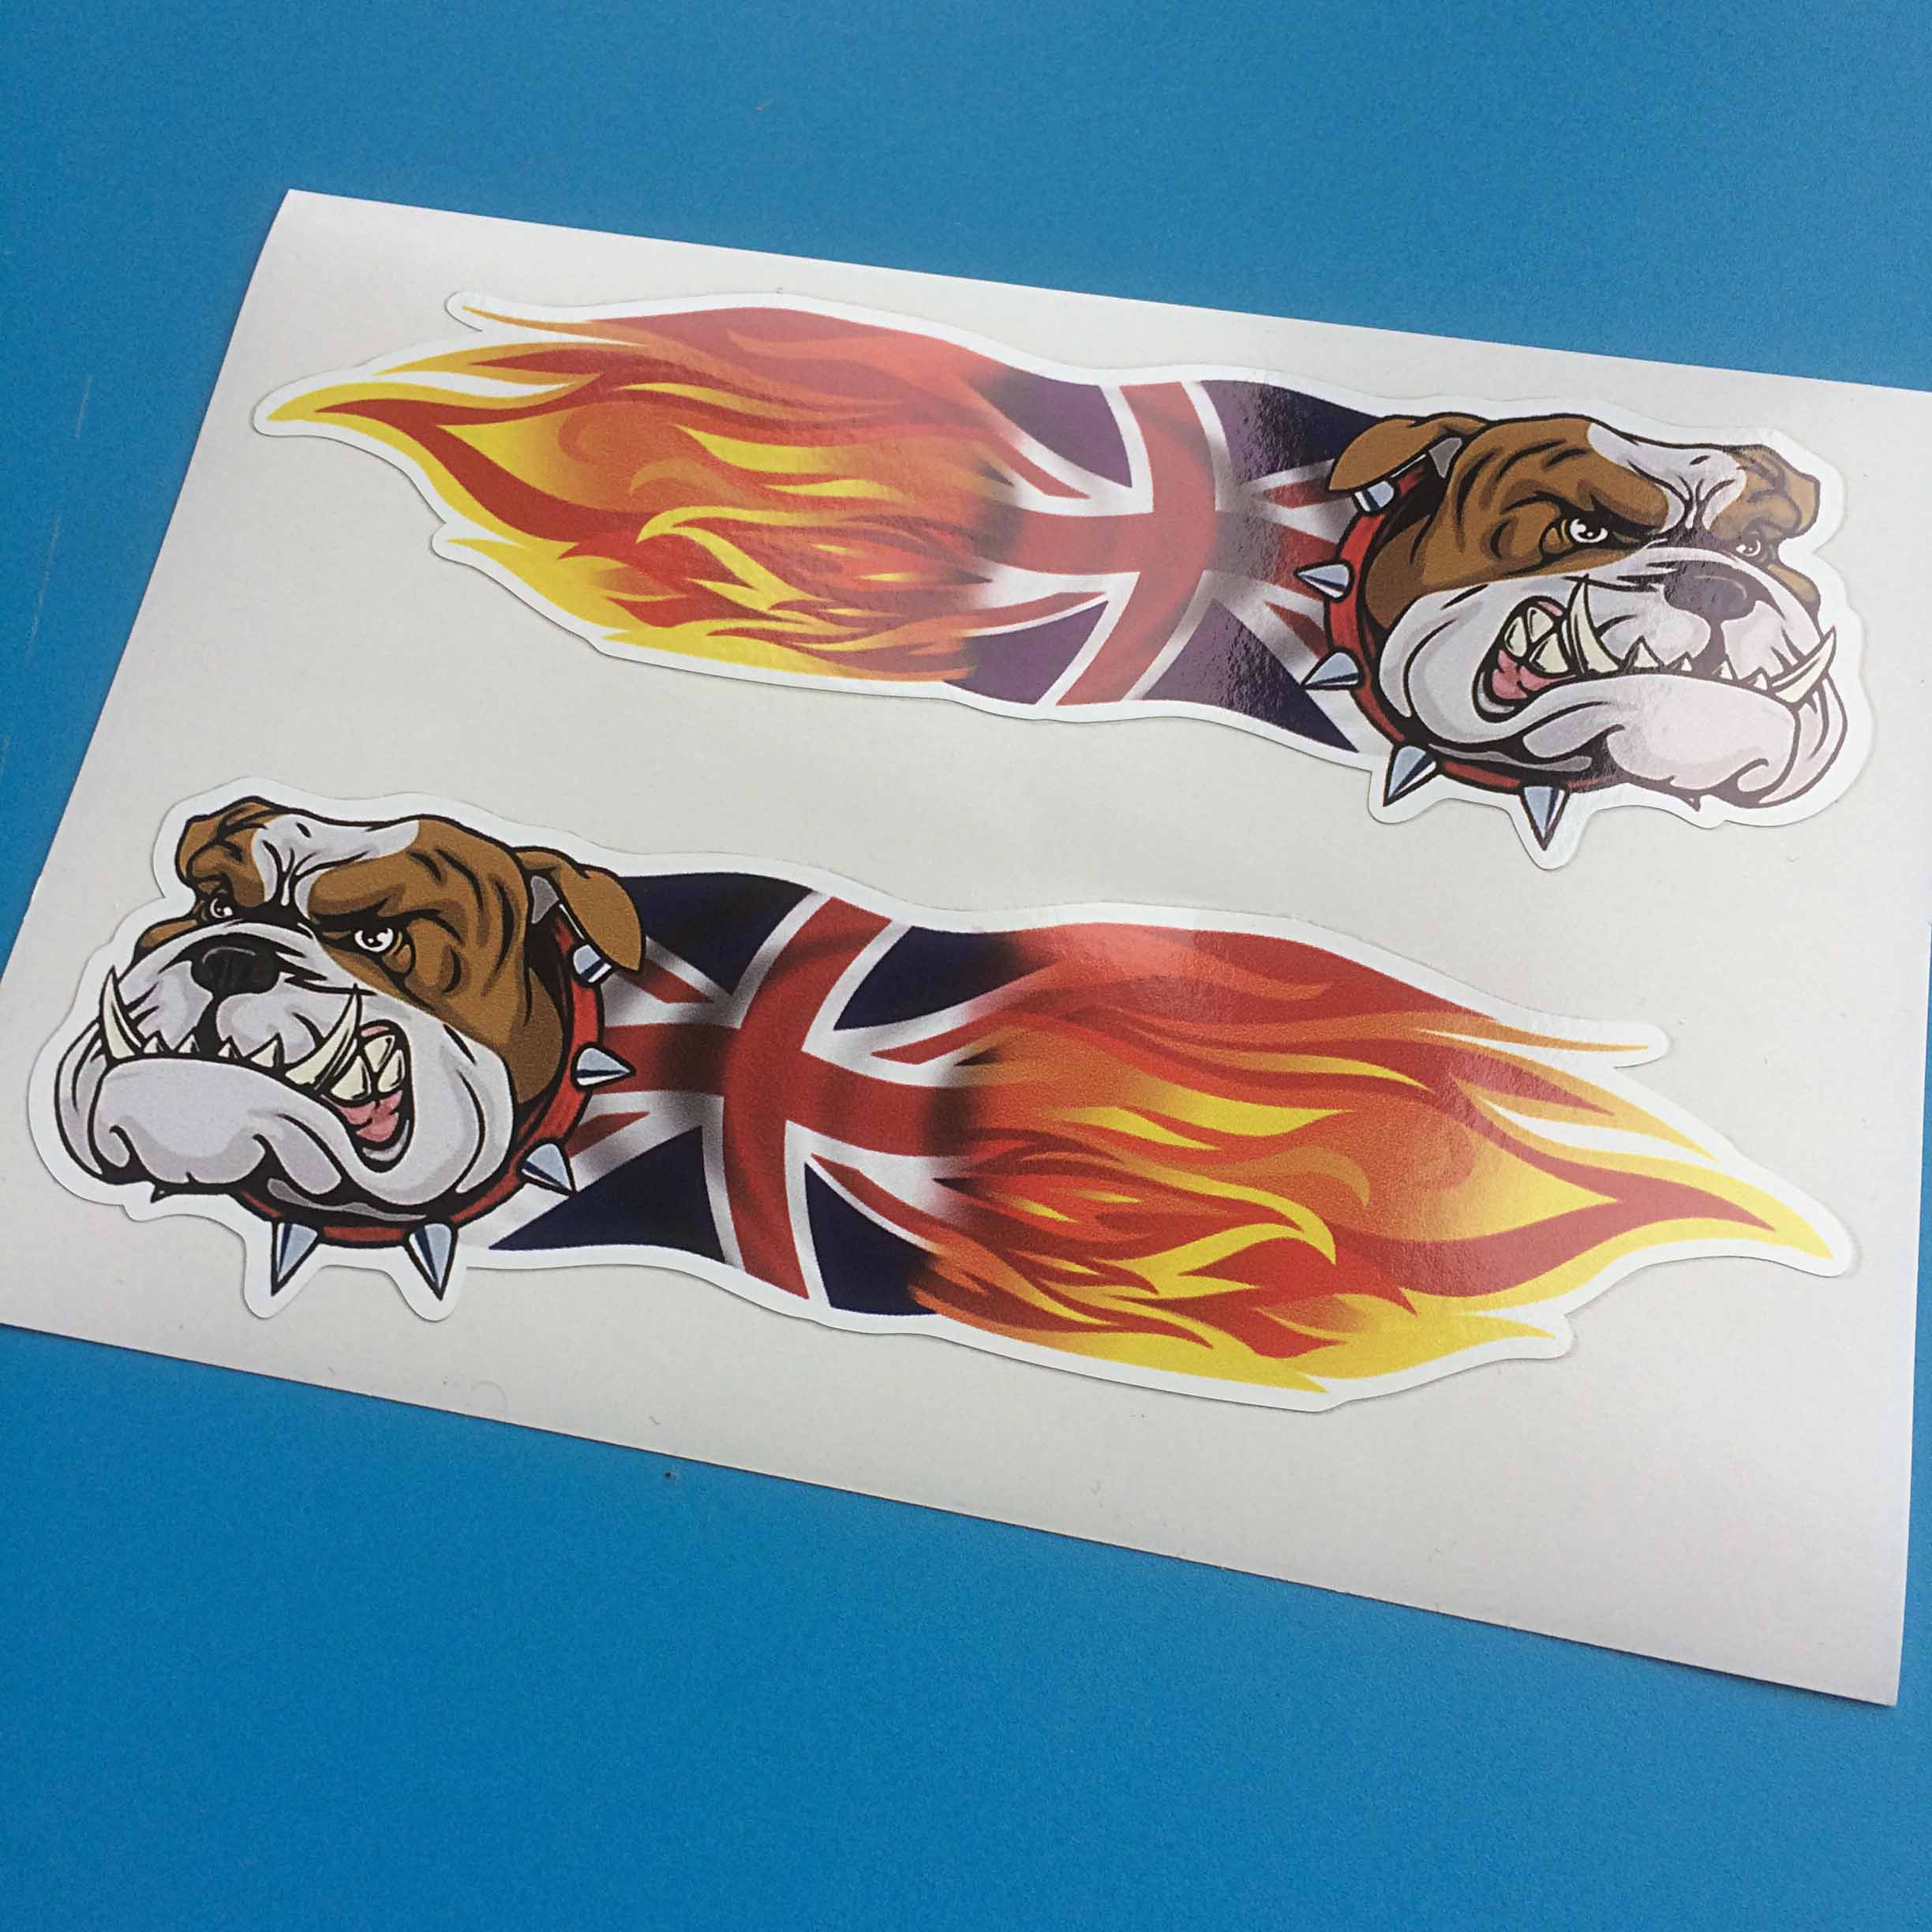 Face of a bulldog with sharp teeth. The dog collar is red with sharp studs. It's body is half Union Jack and half in flames.